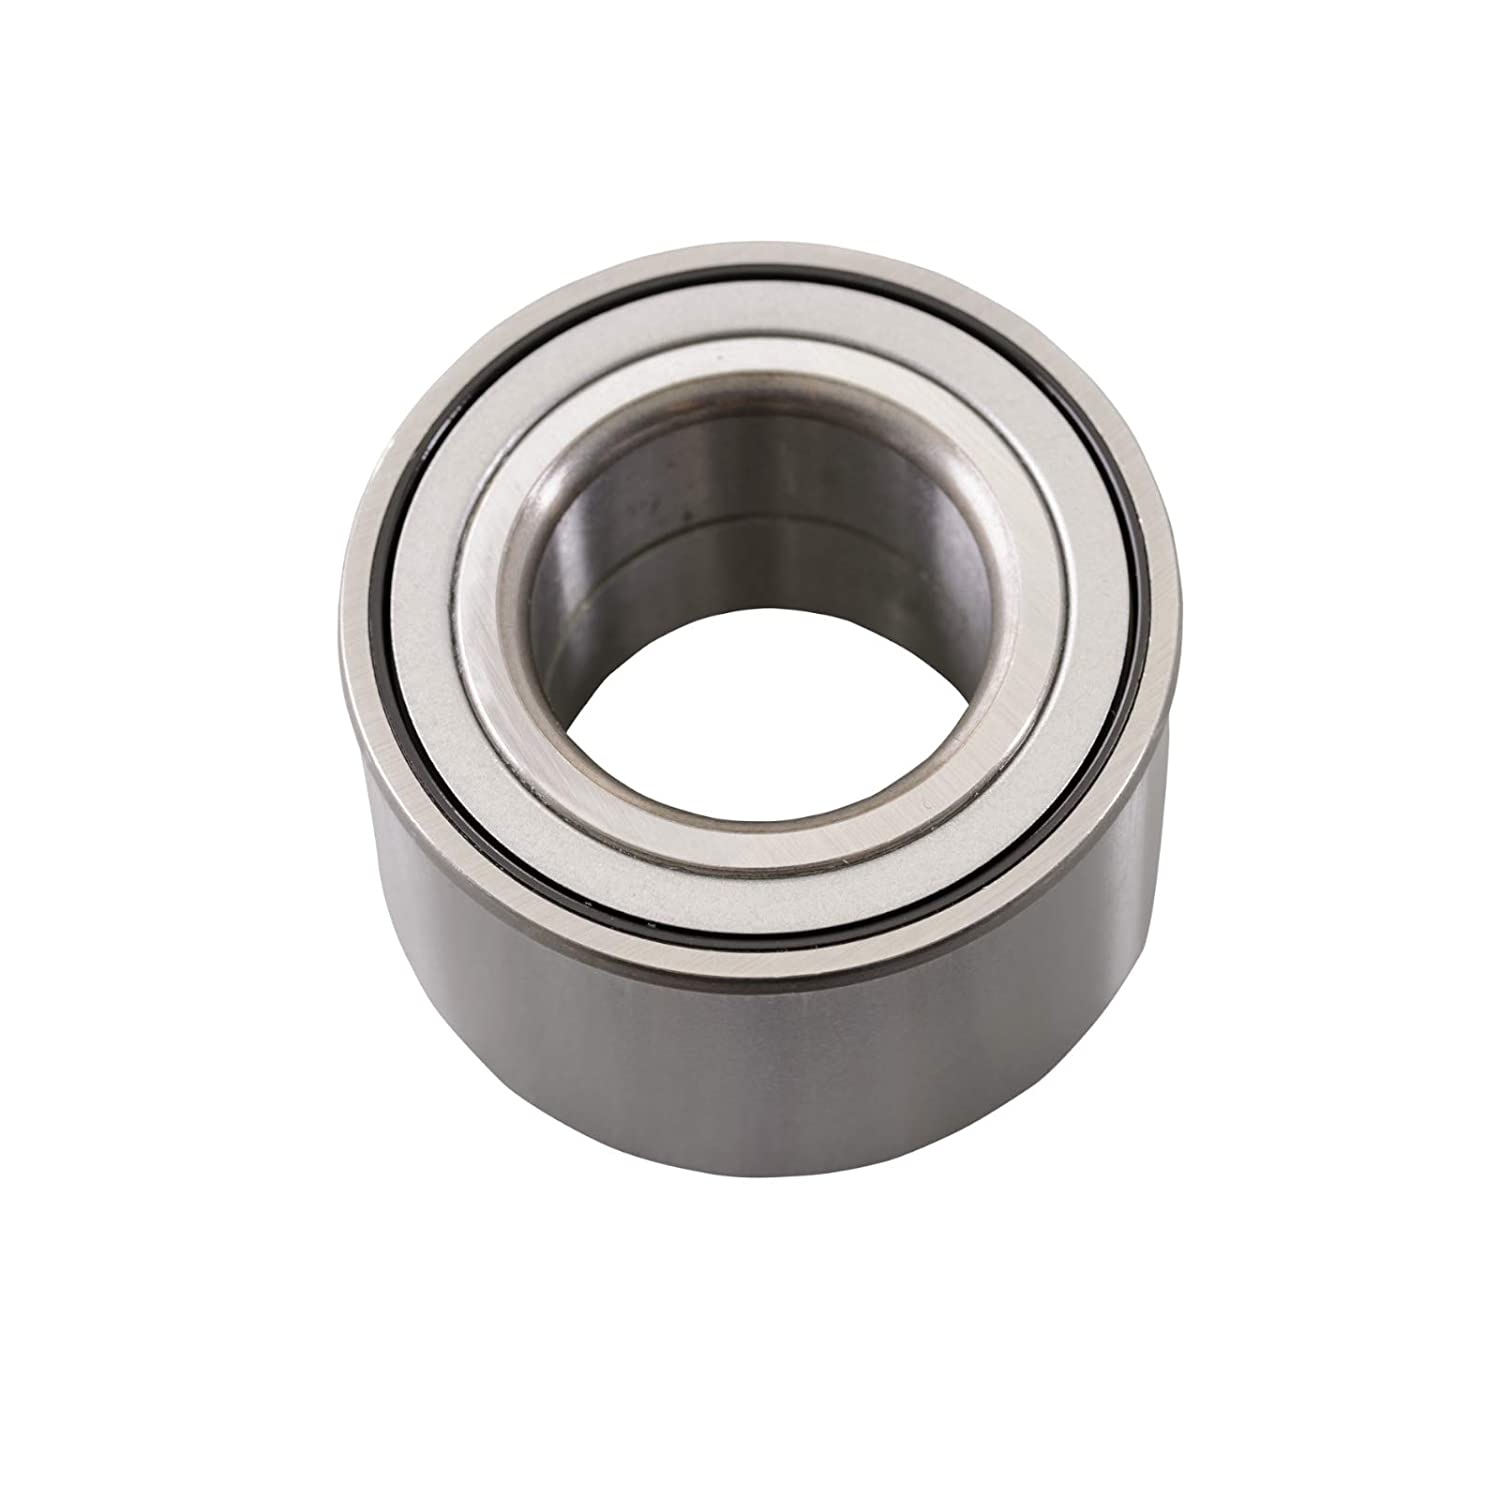 East Lake Axle rear wheel bearing compatible with Yamaha Grizzly 550//660 700 2003-2011